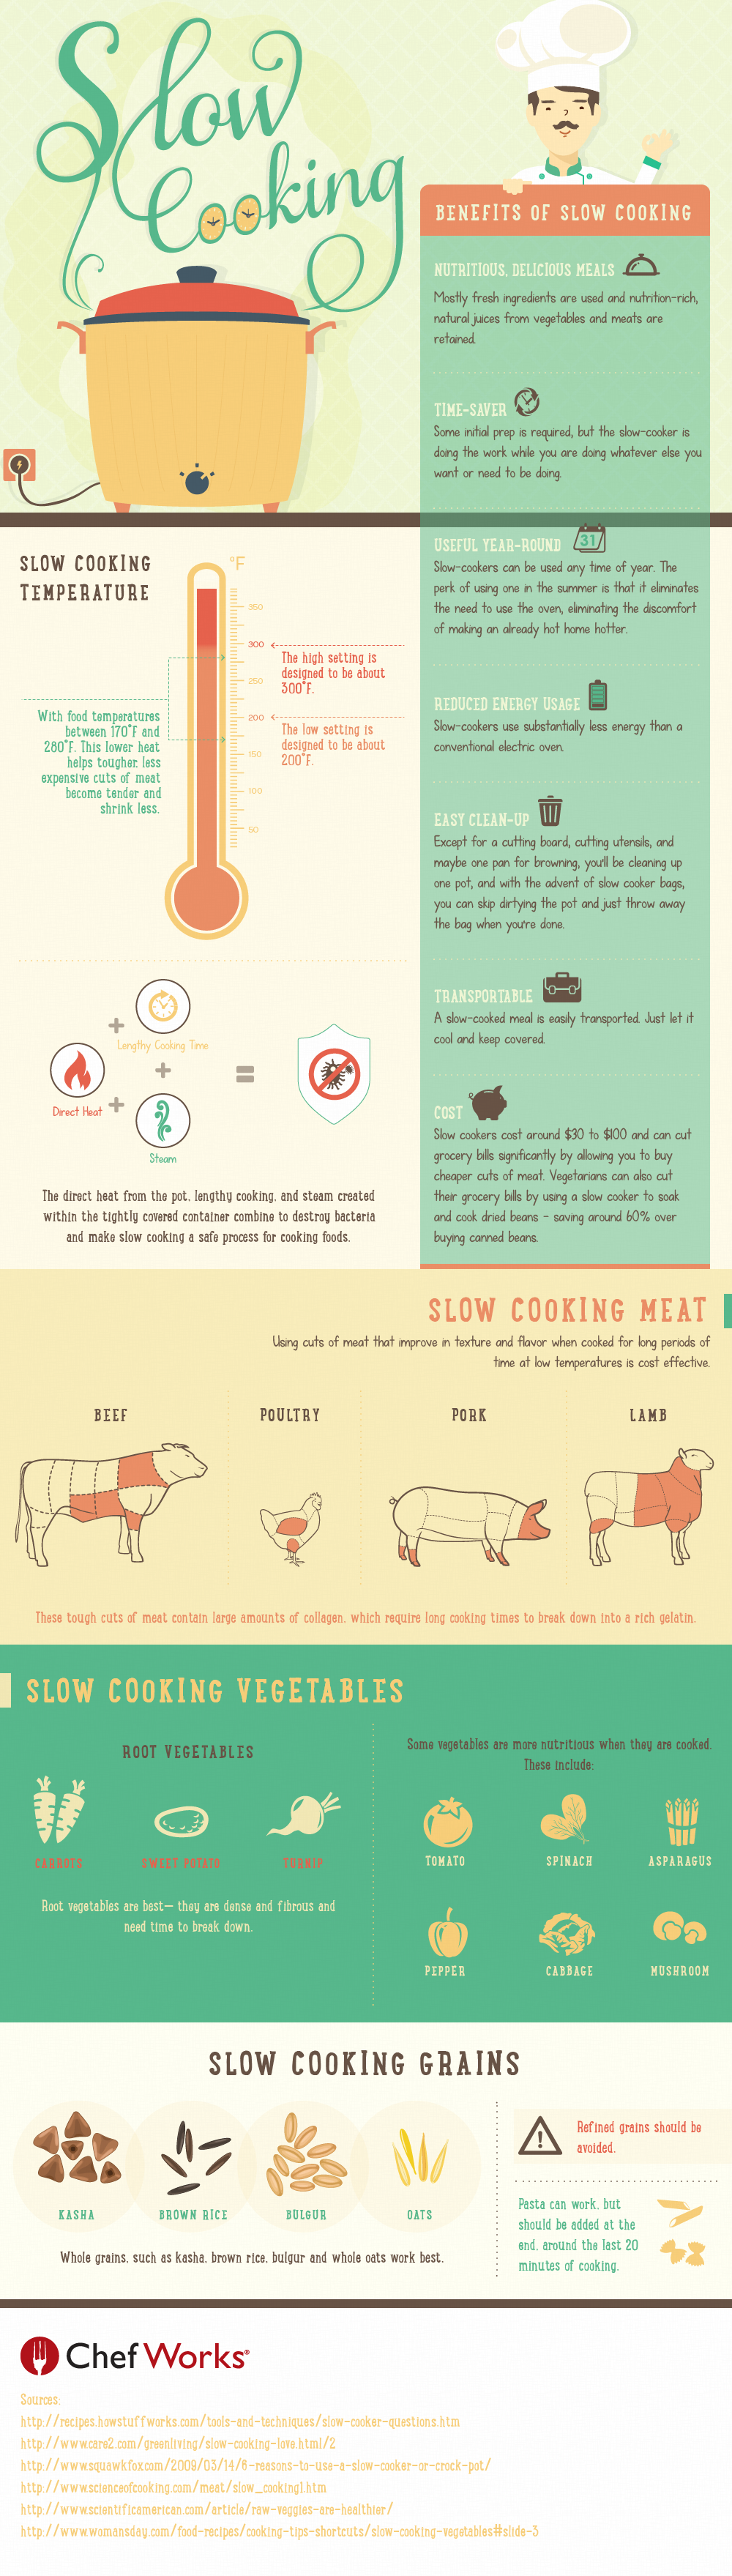 Slow Cooking 2.0-01 (1)